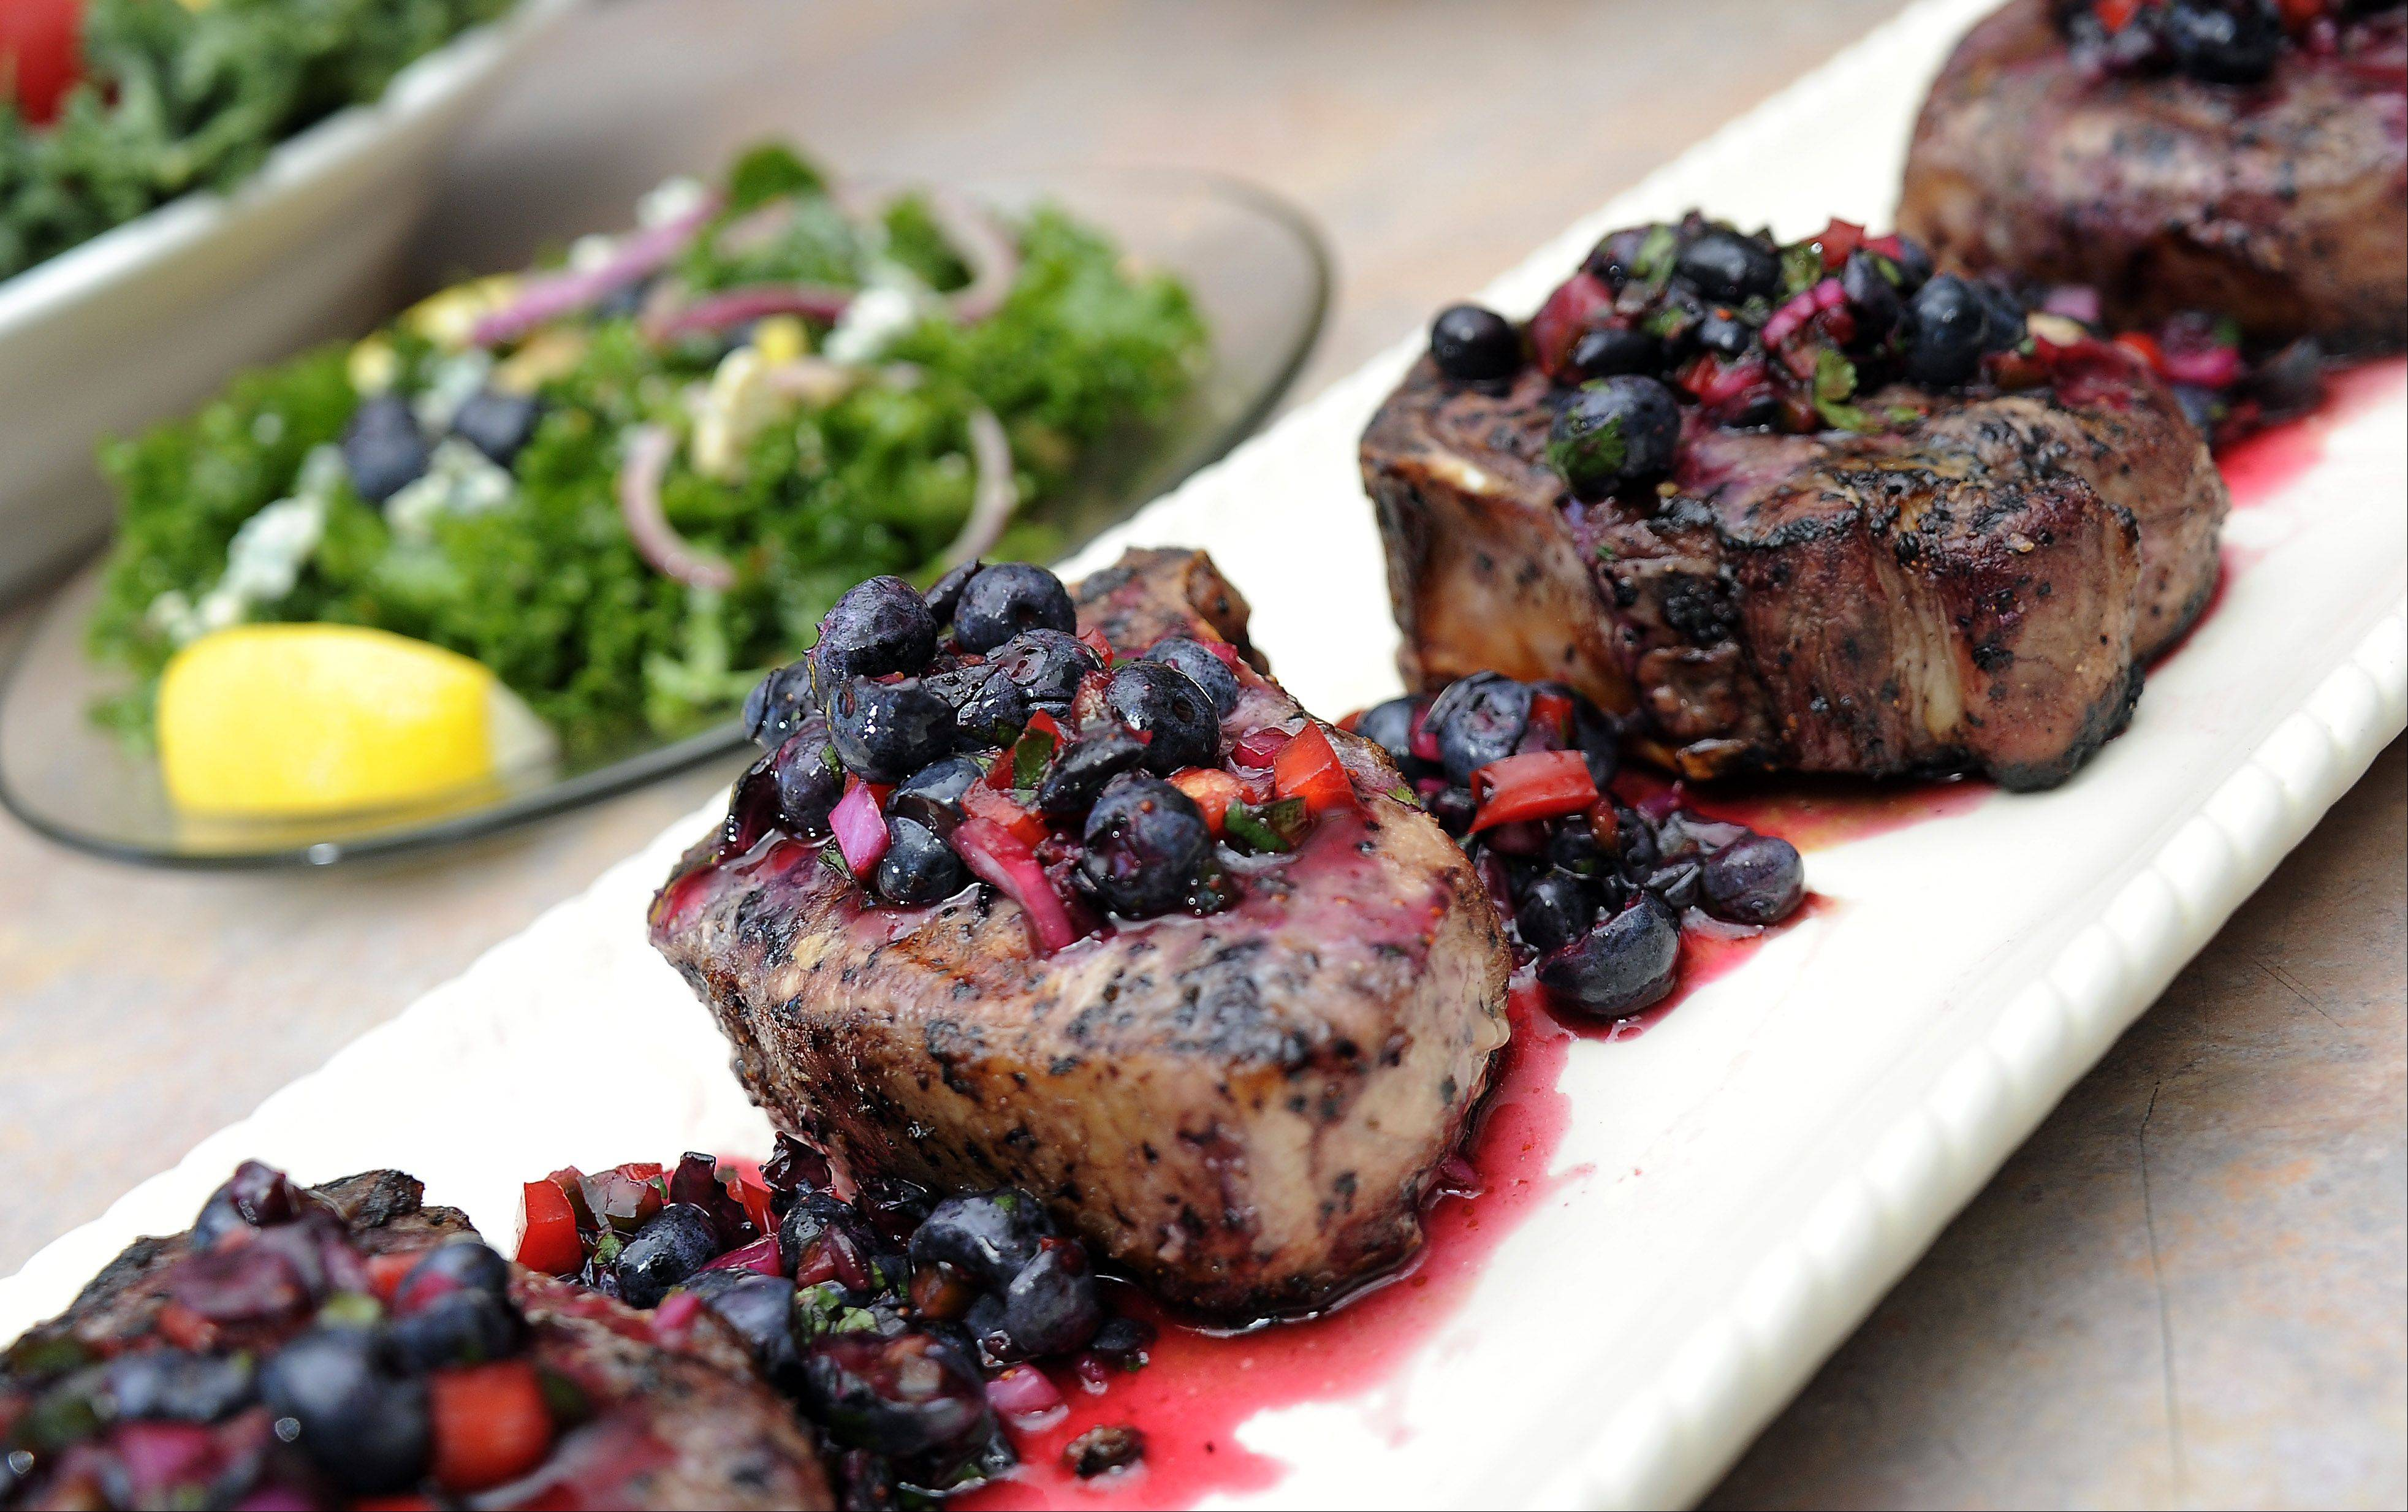 Ronald Nunes's blueberry marinated pork chops and nutty kale salad won the Holland House Sherry Cooking Wine recipe challenge.